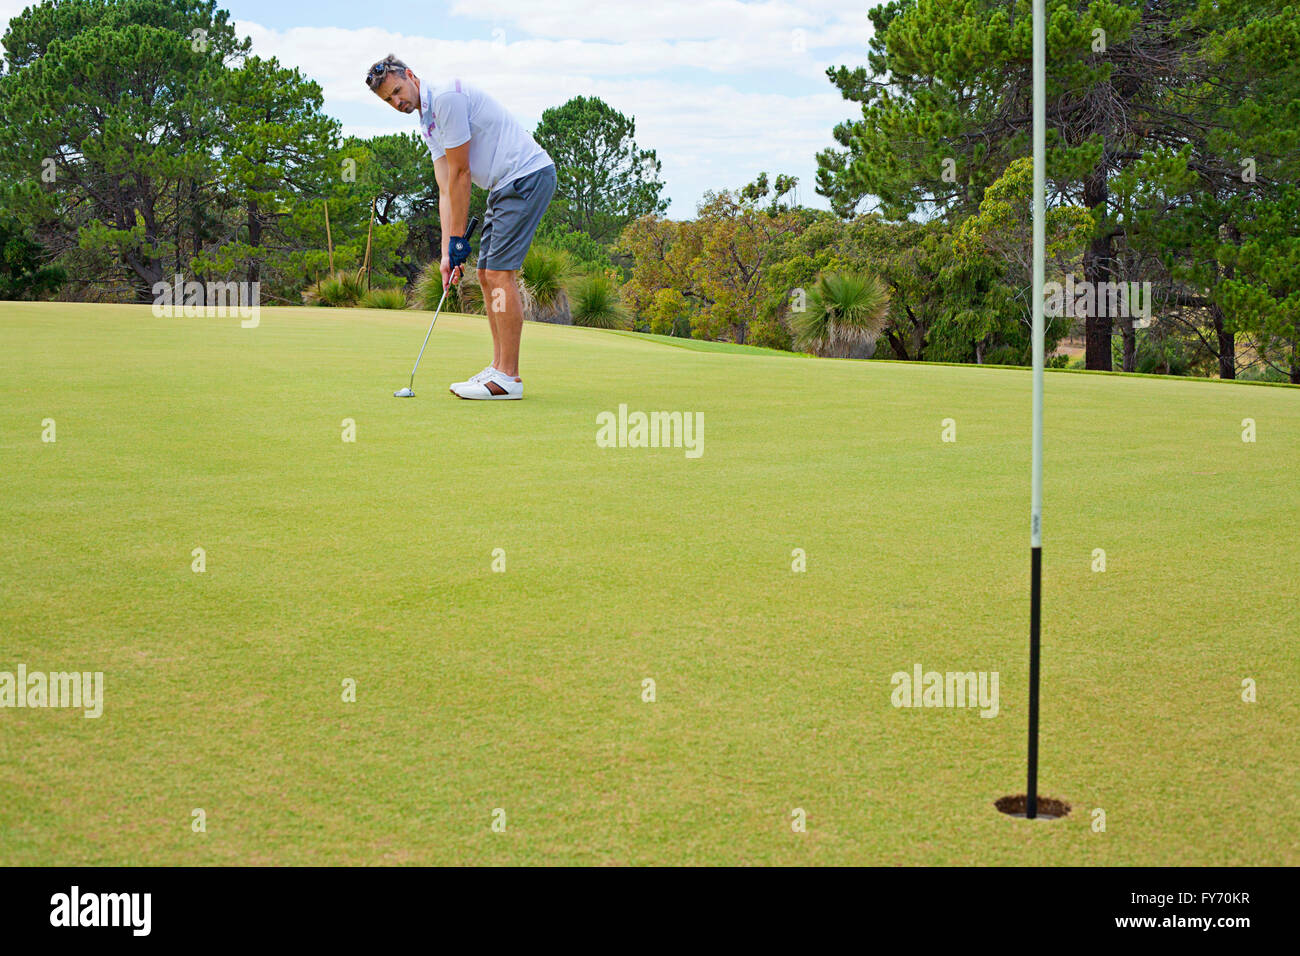 Young golfer putting toward the hole. Golf. Stock Photo